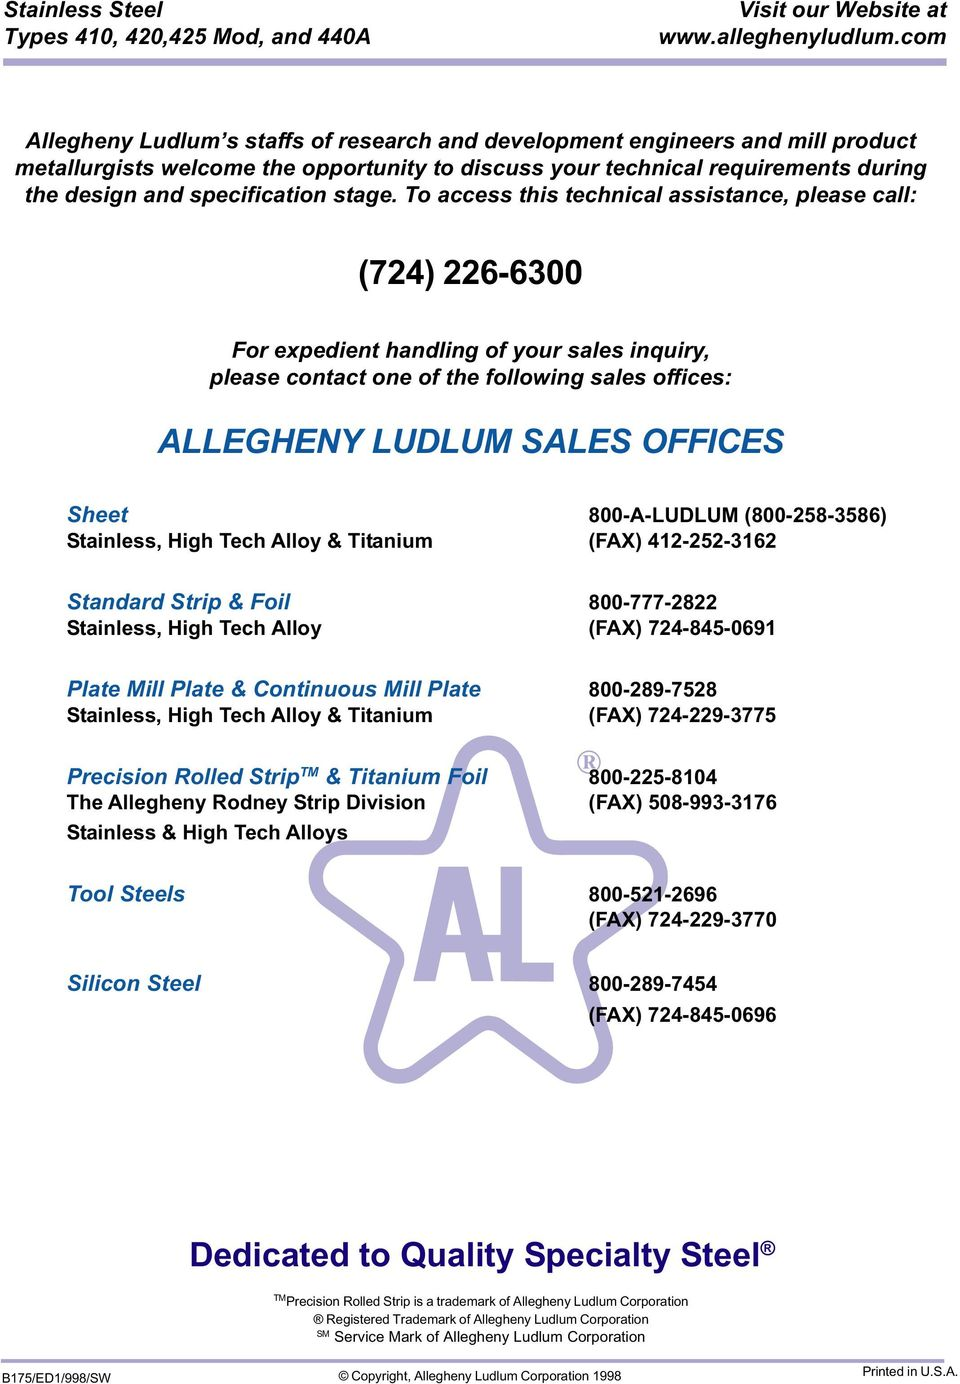 800-A-LUDLUM (800-258-3586) Stainless, High Tech Alloy & Titanium (FAX) 412-252-3162 Standard Strip & Foil 800-777-2822 Stainless, High Tech Alloy (FAX) 724-845-0691 Plate Mill Plate & Continuous